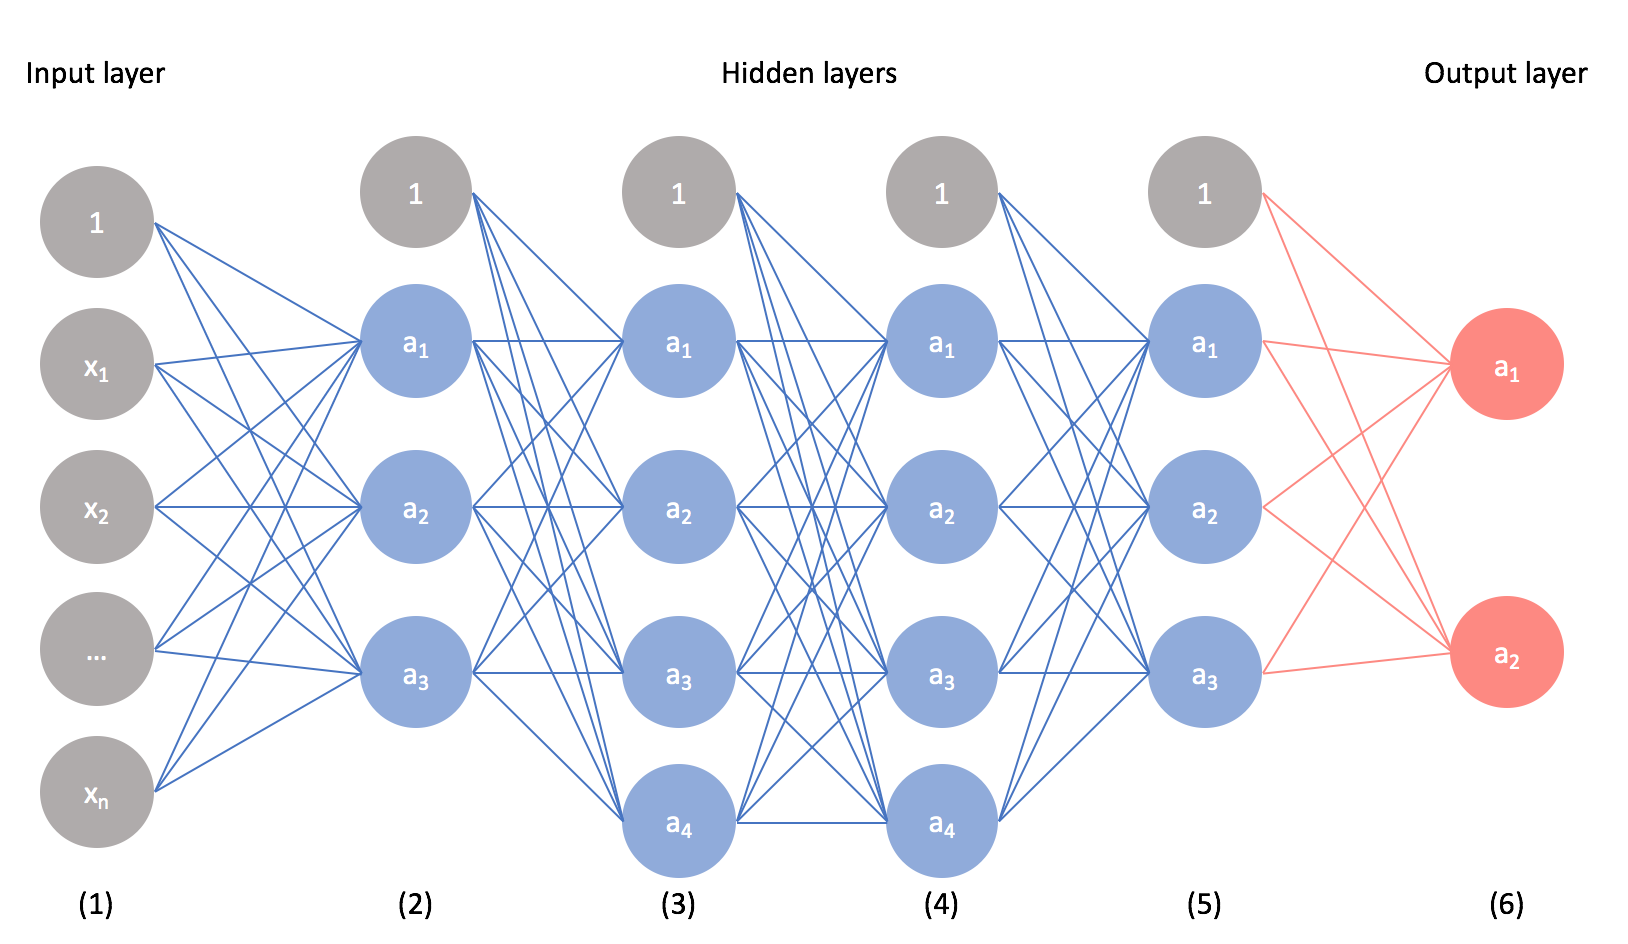 Why do neural networks generalize so poorly?